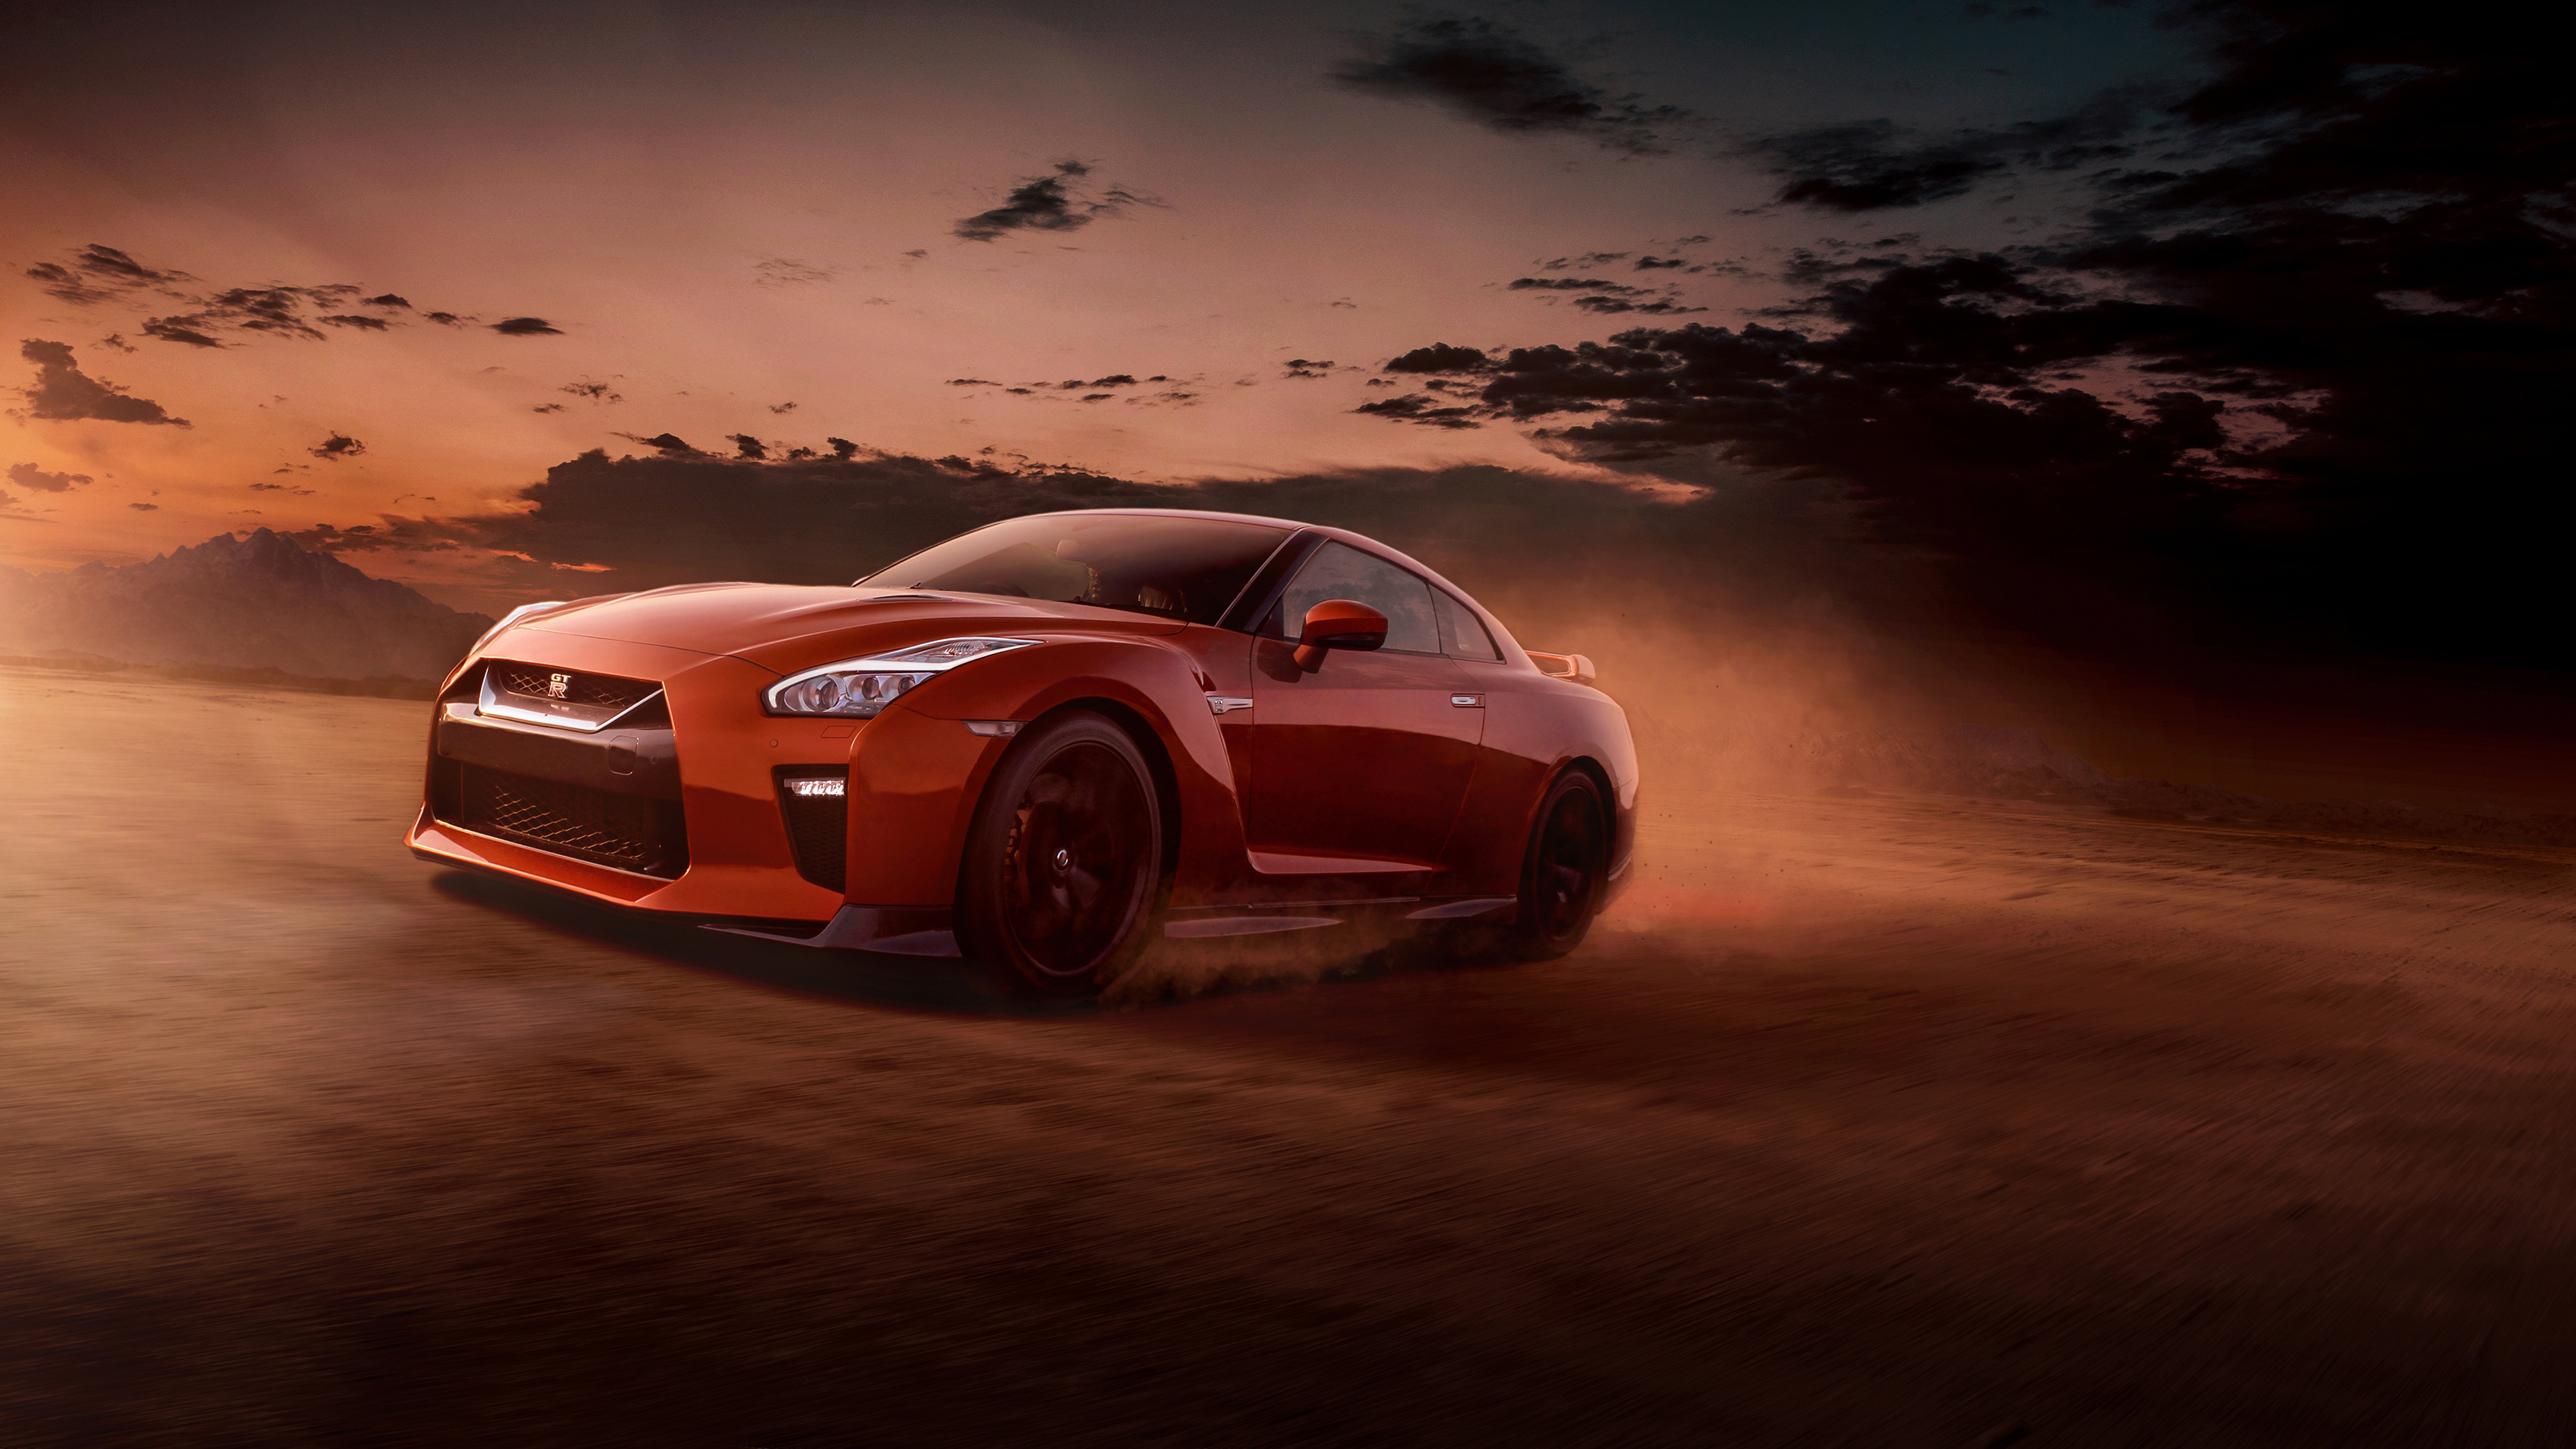 Nissan GTR 4k, HD Cars, 4k Wallpapers, Images, Backgrounds ...